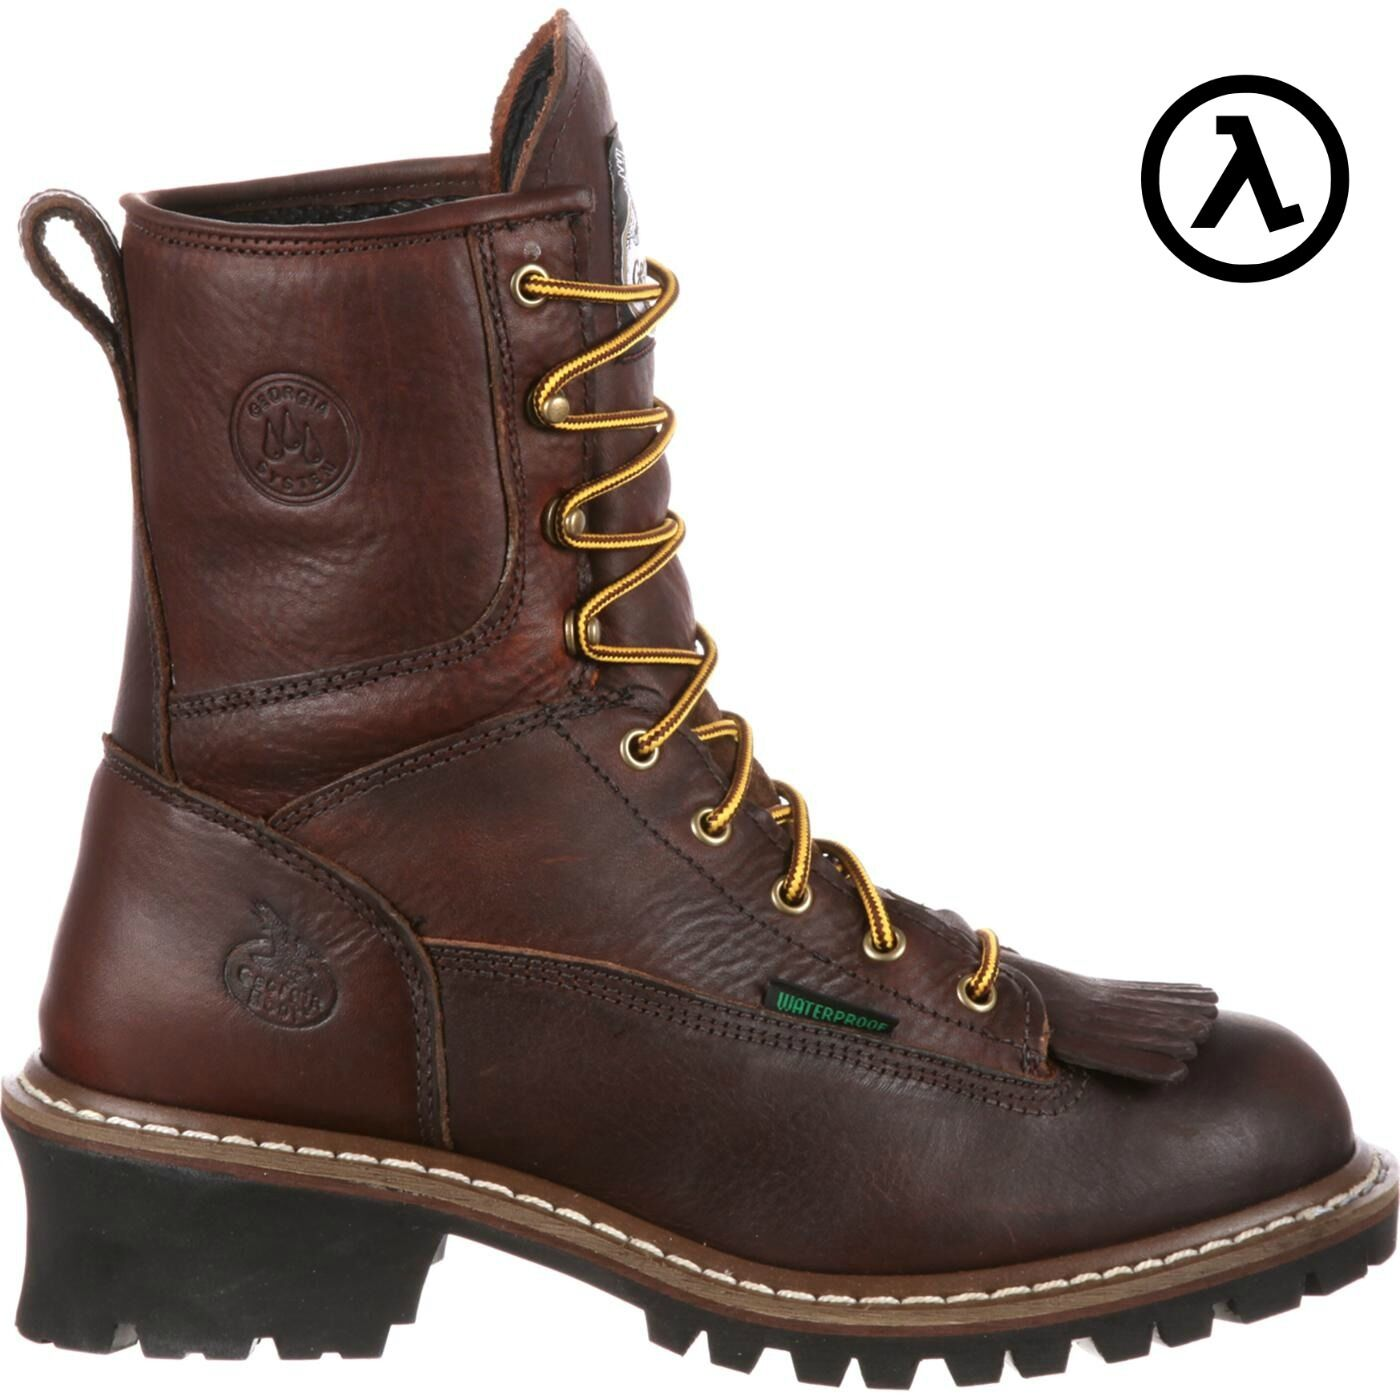 GEORGIA STEEL TOE WATERPROOF 8